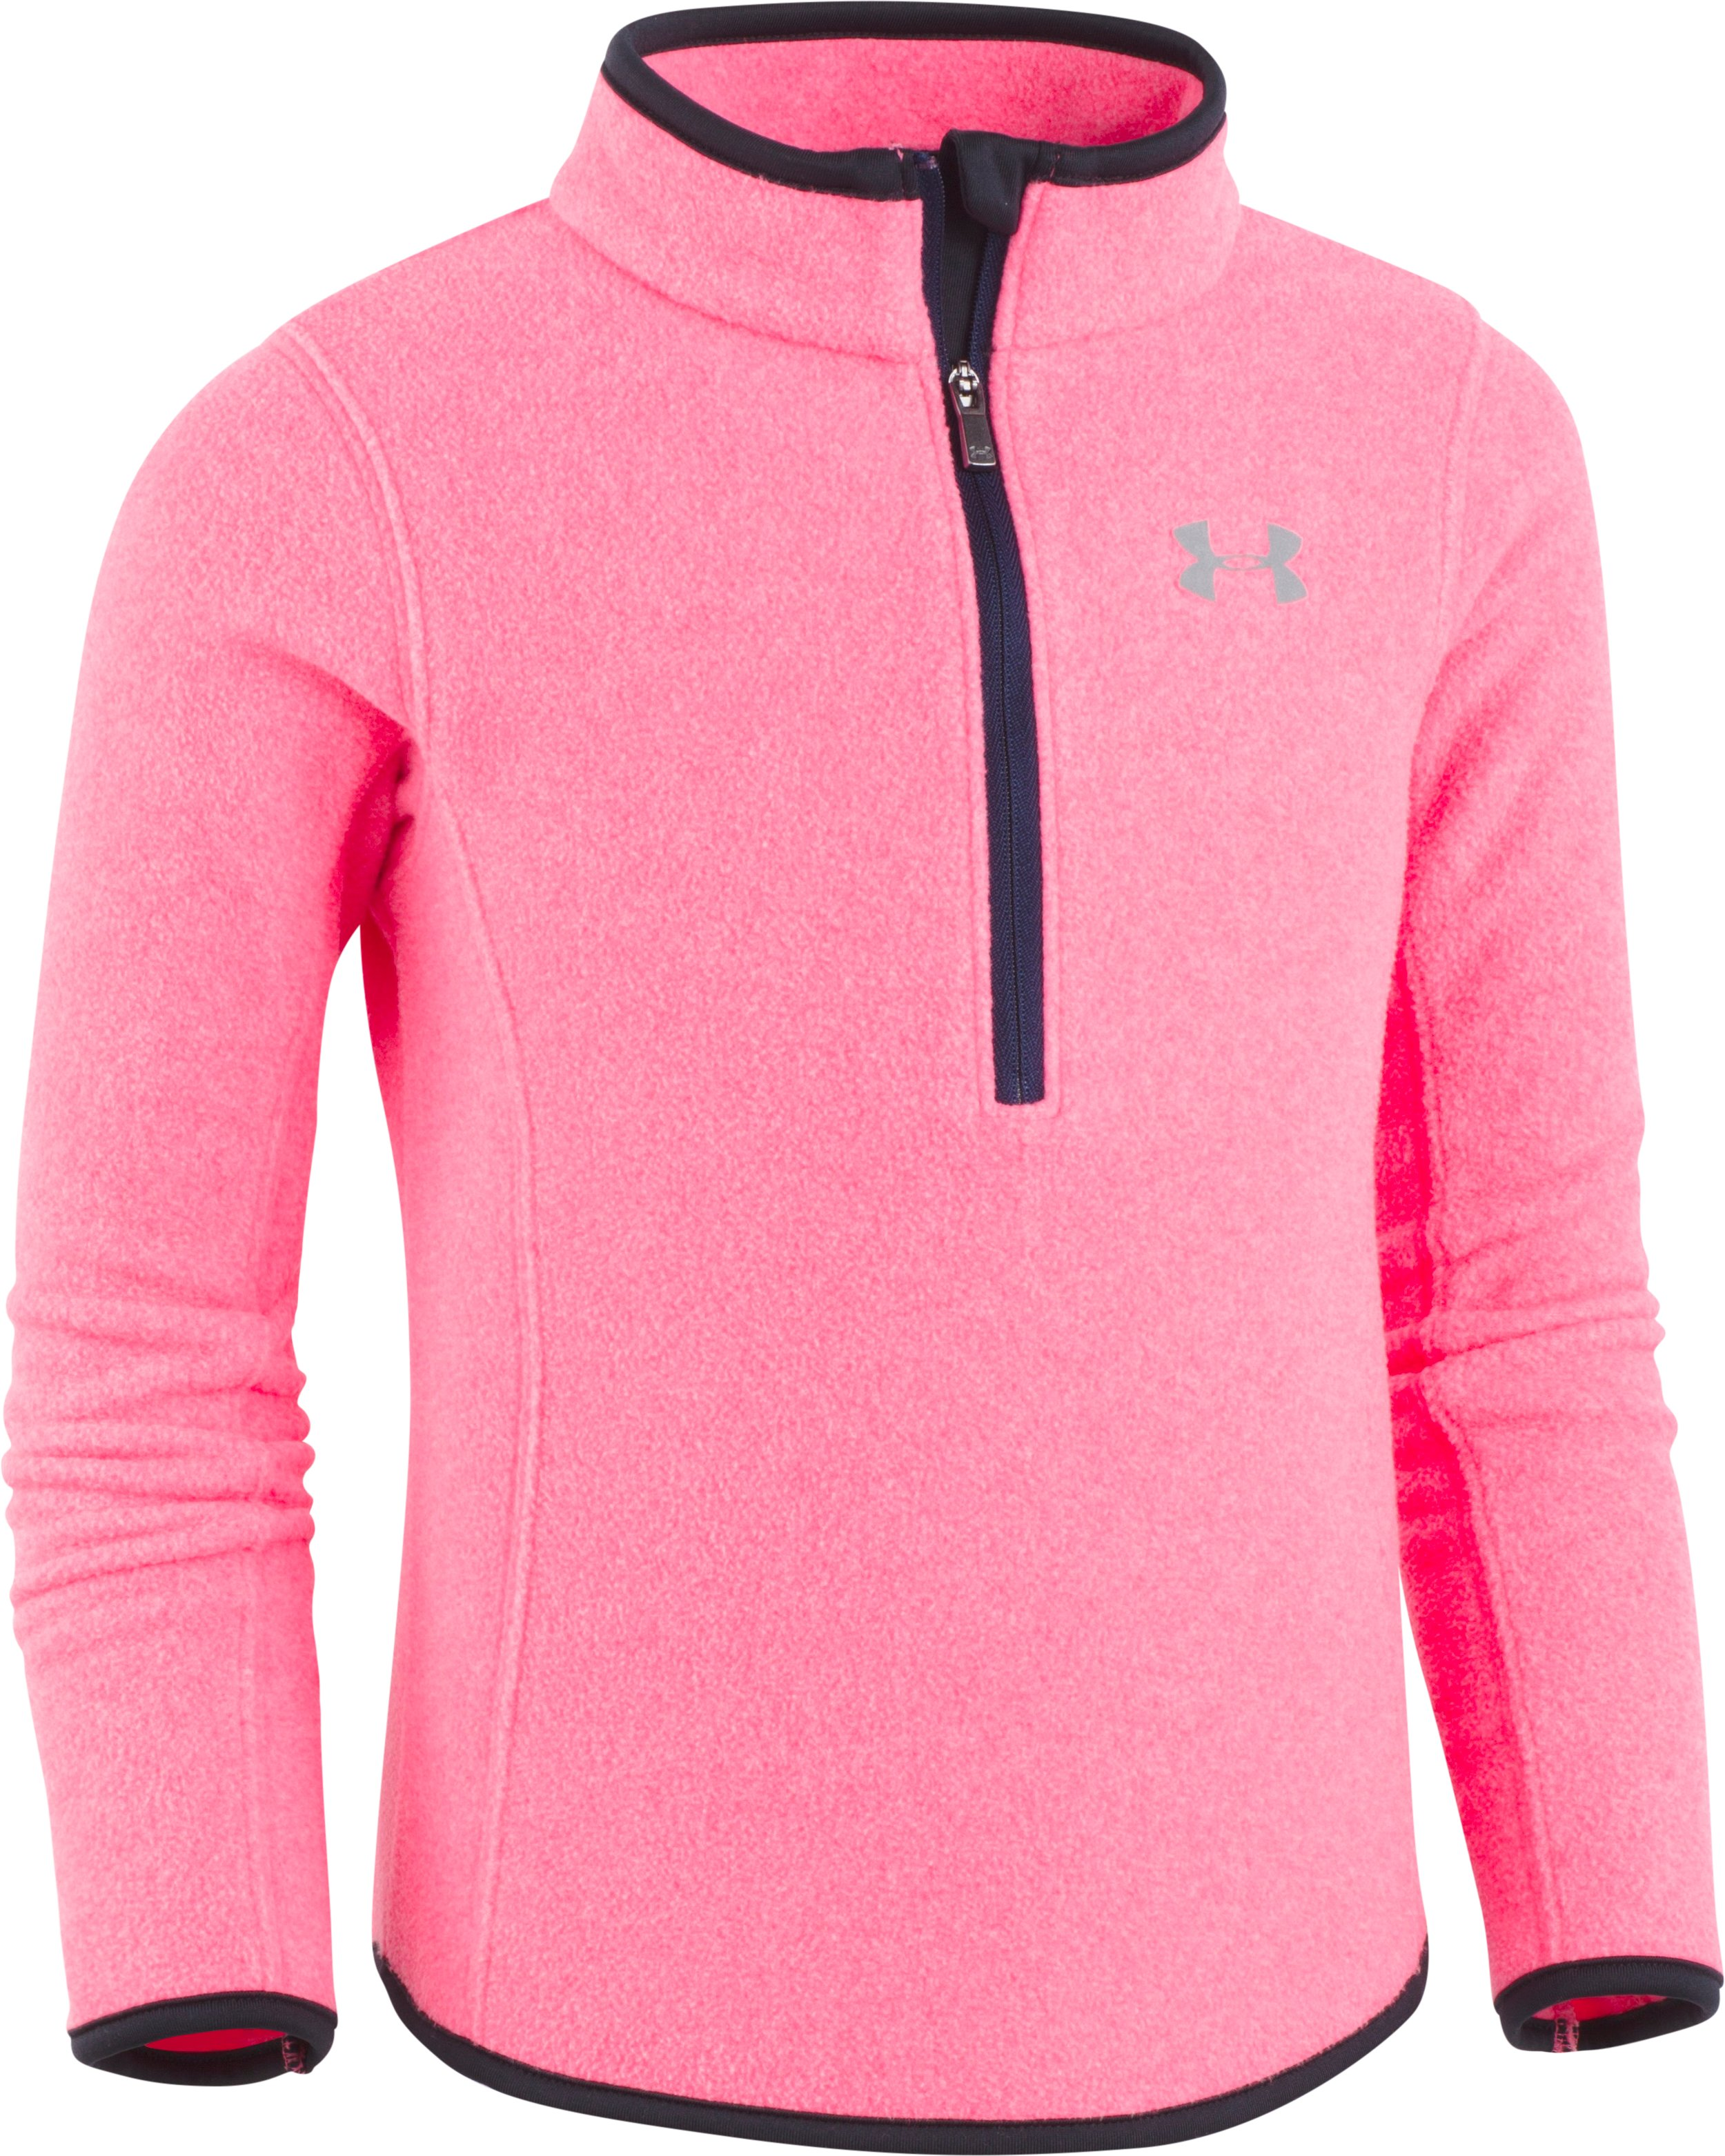 Girls' Pre-School UA Heathered 1/4 Zip, PENTA PINK